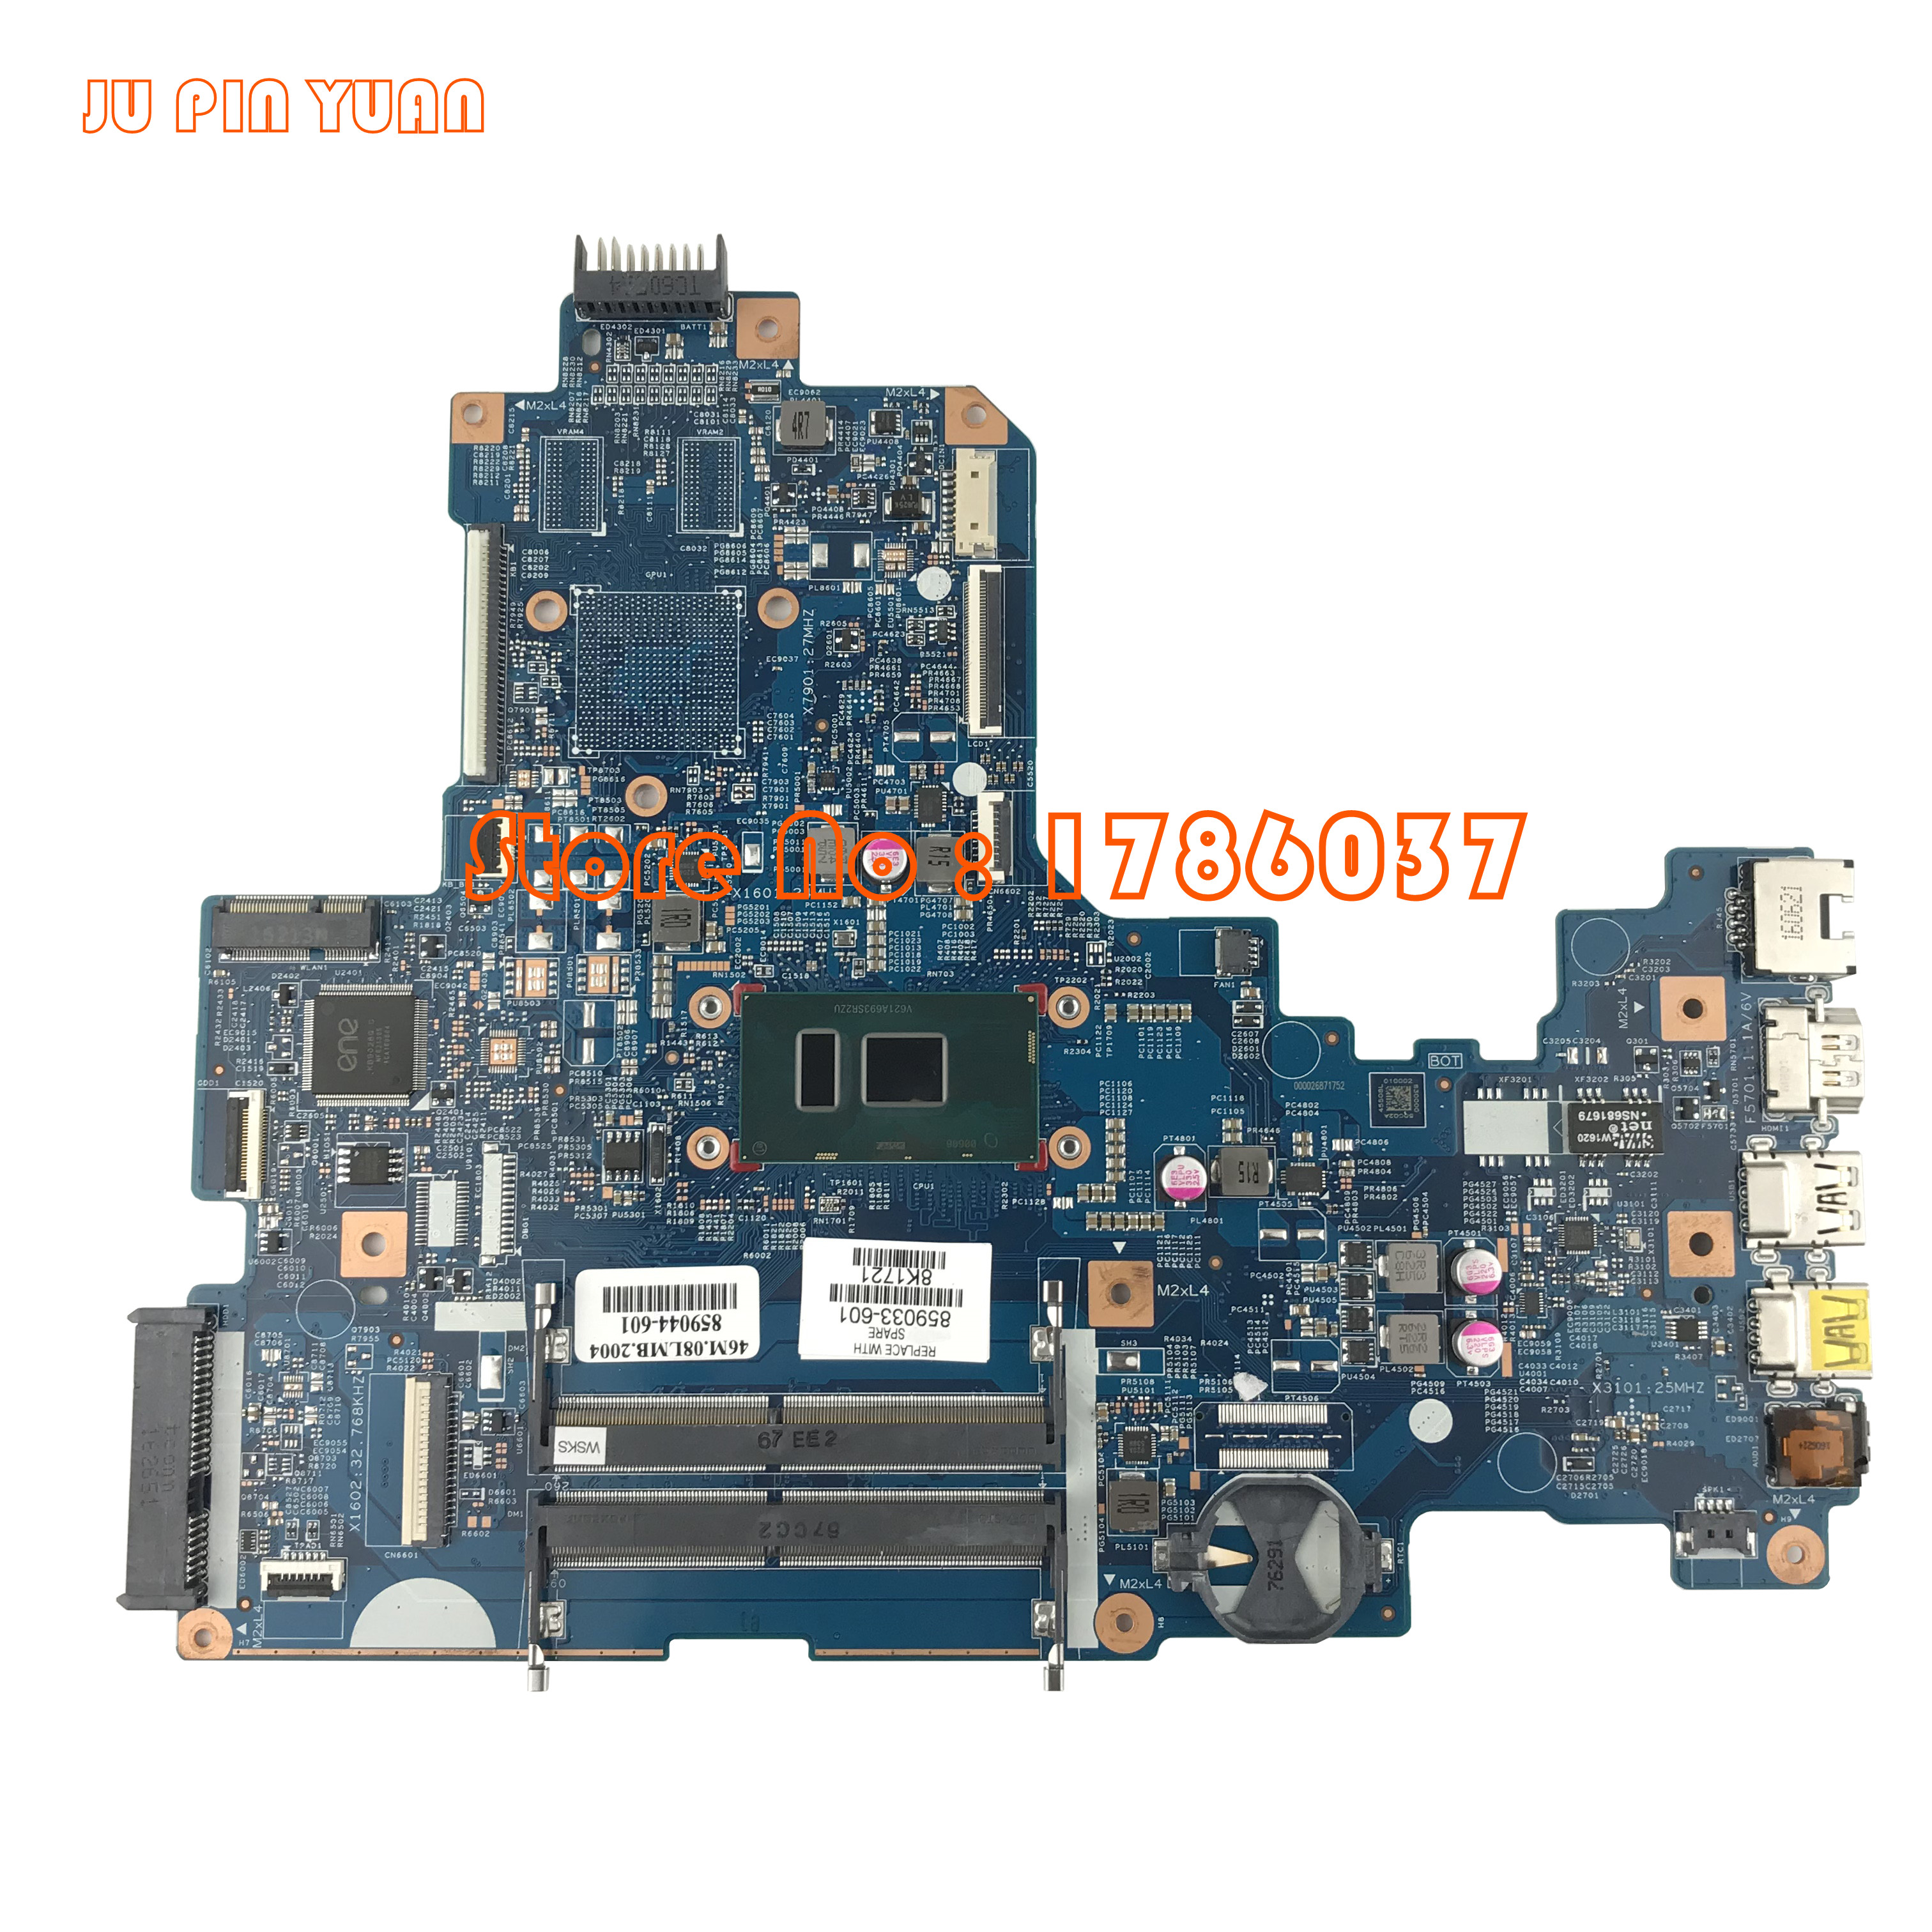 JU PIN YUAN 859033 601 859033 501 448 08E01 0021 for HP Notebook 17 X series